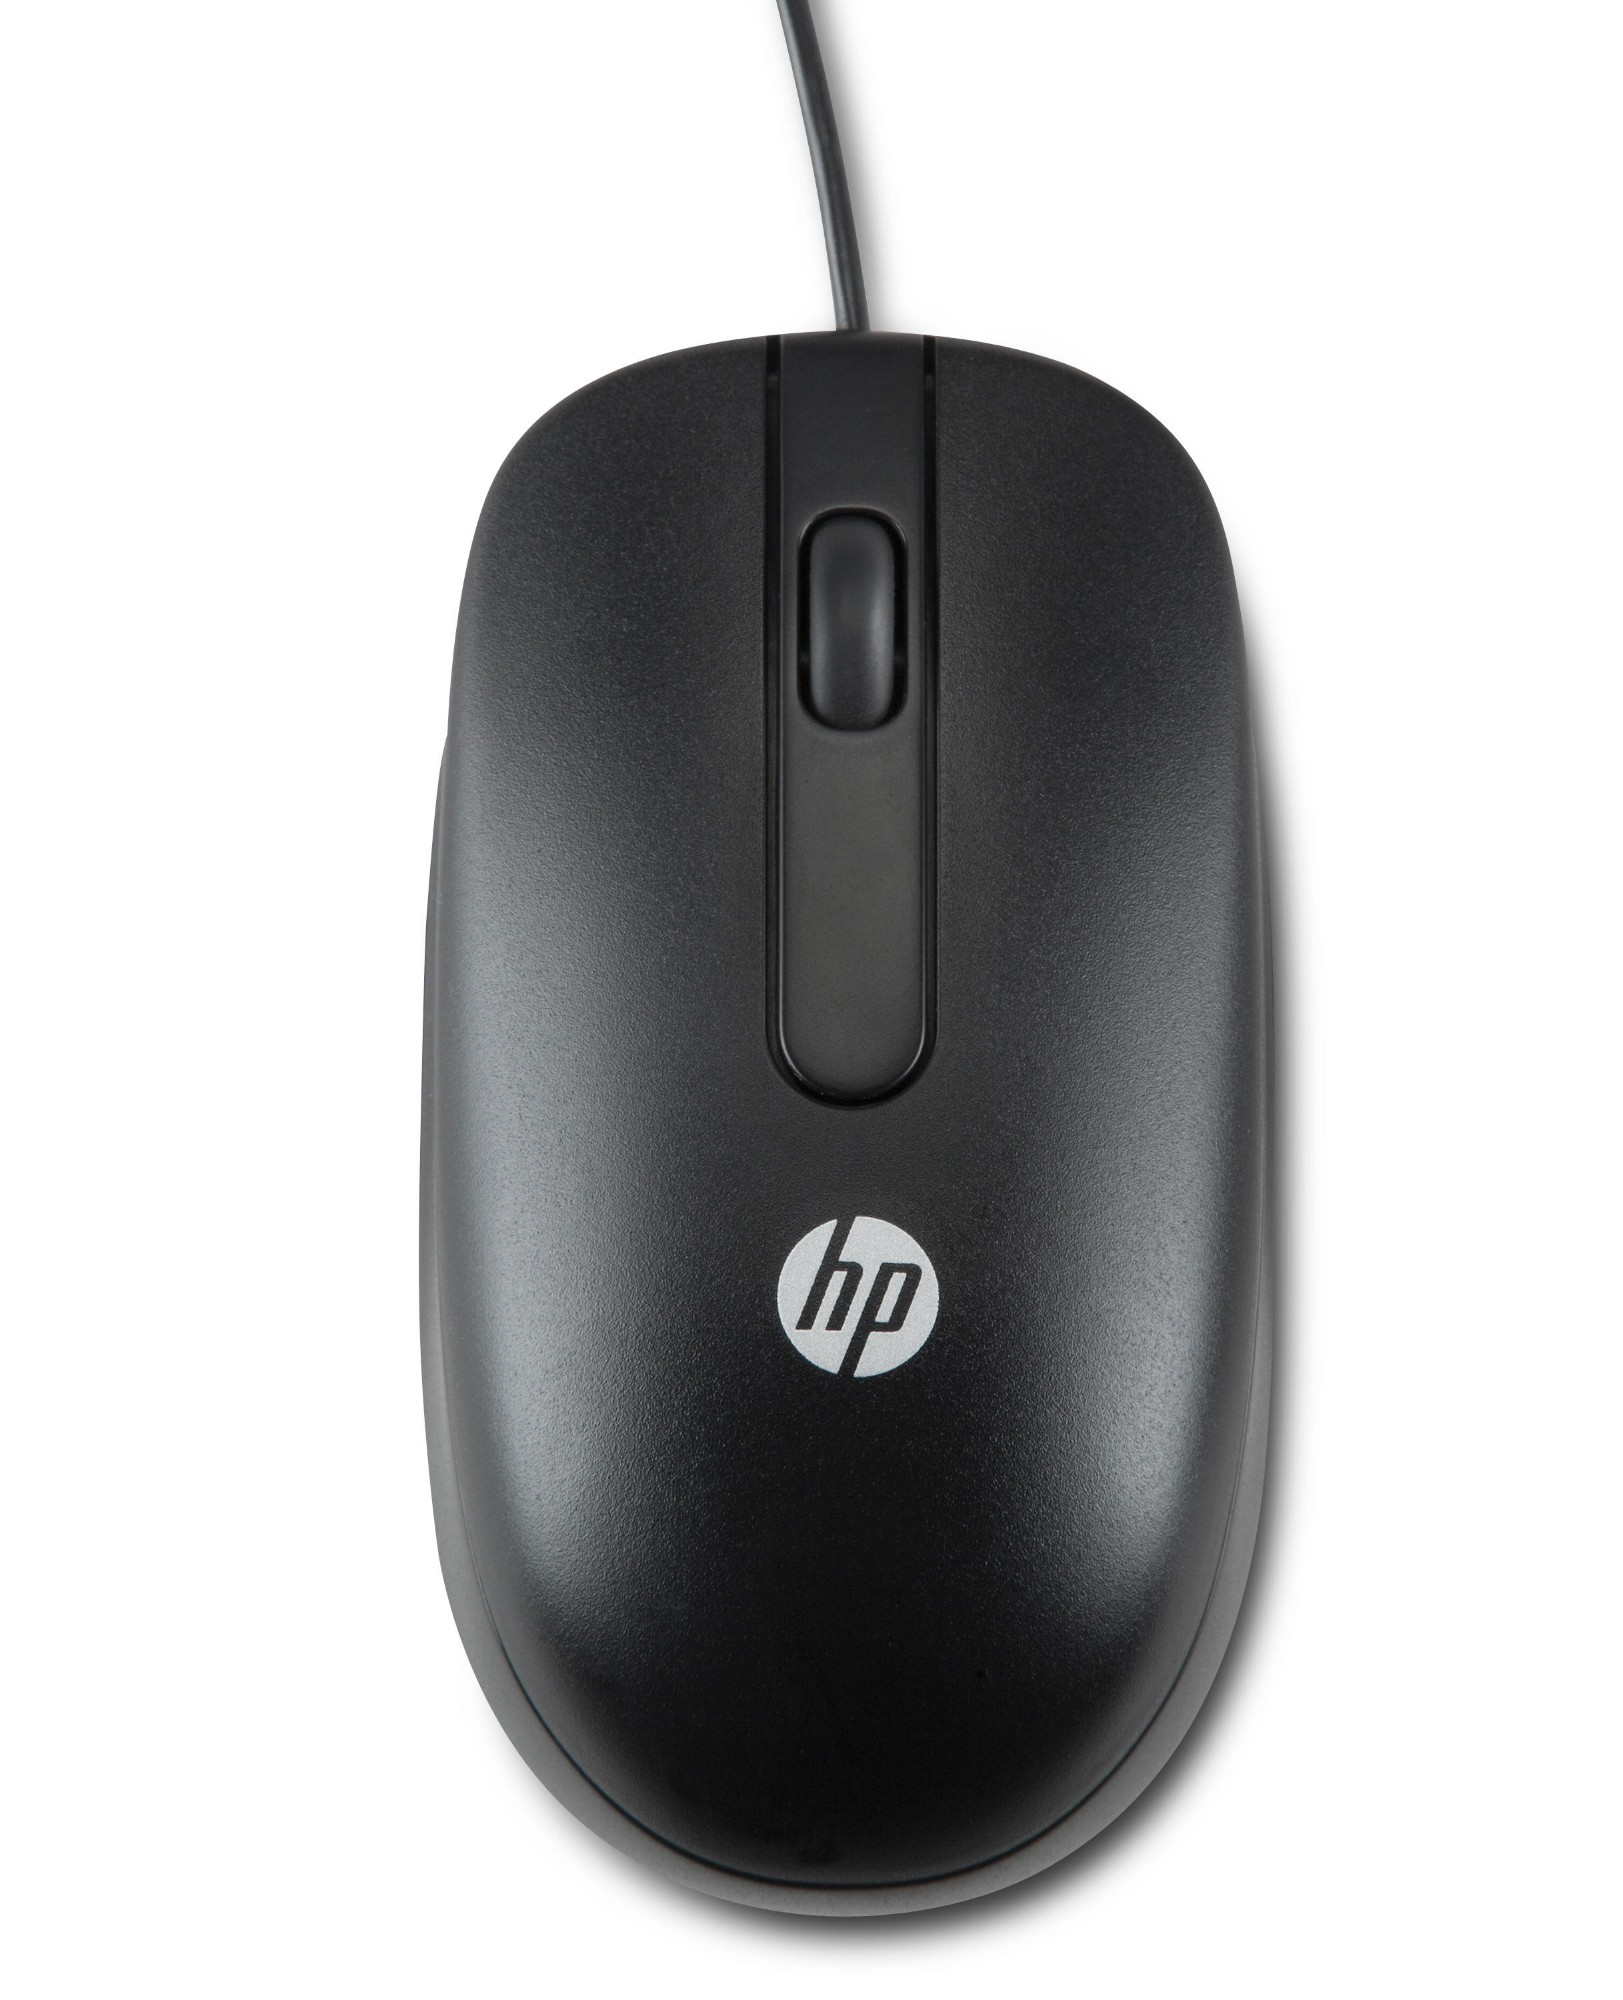 Find Scroll Wheel Usb Shop Every Store On The Internet Via Pricepi Mouse Optical Logitech B100 Qy777aa 0886112472863 Tplink8port10100 Hp